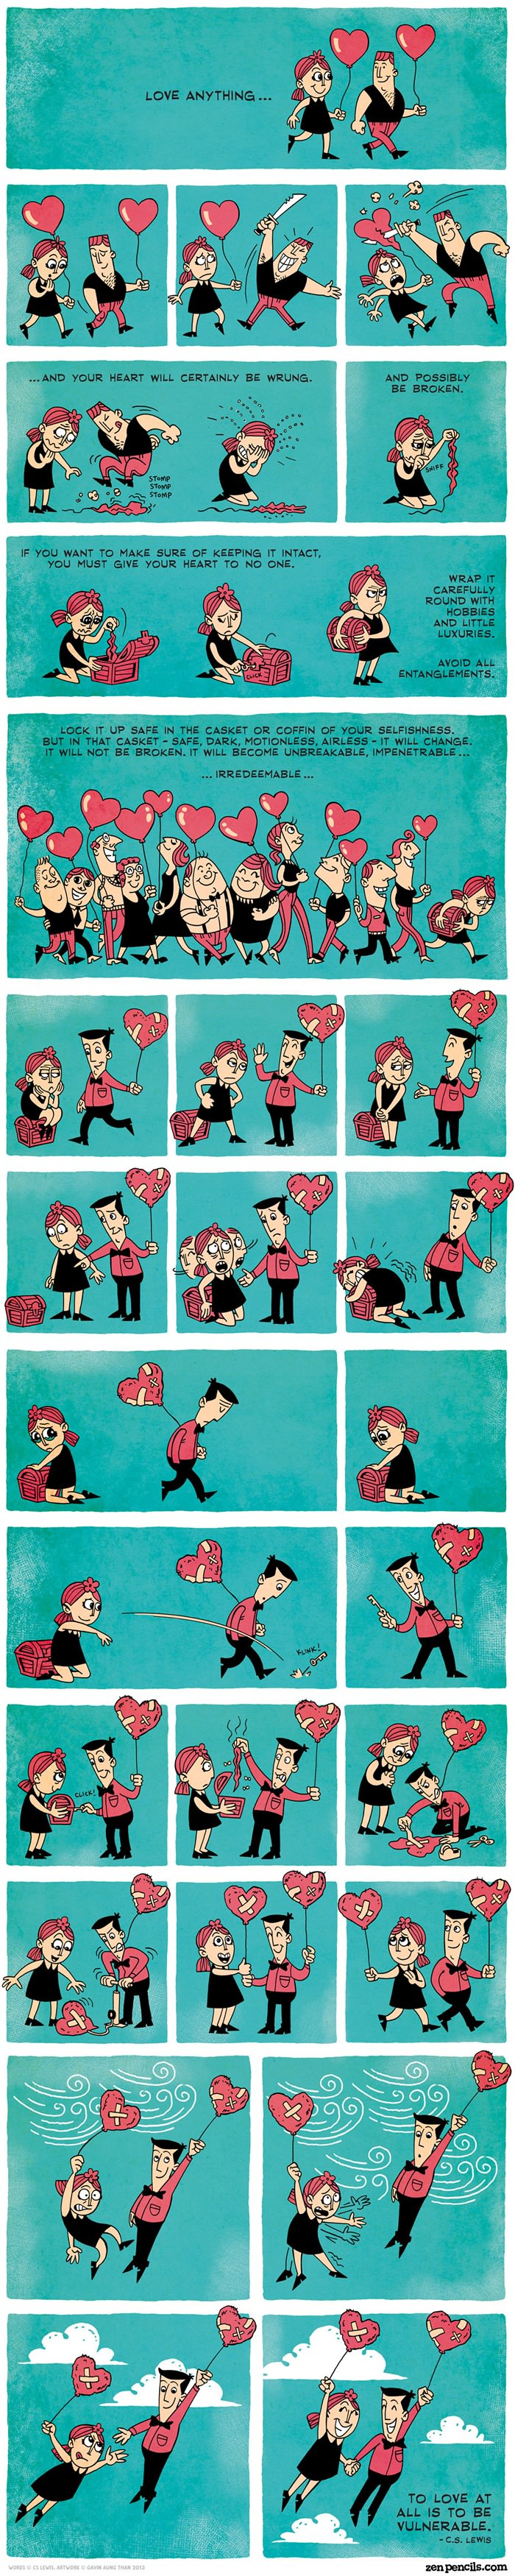 Cartoon about what love is